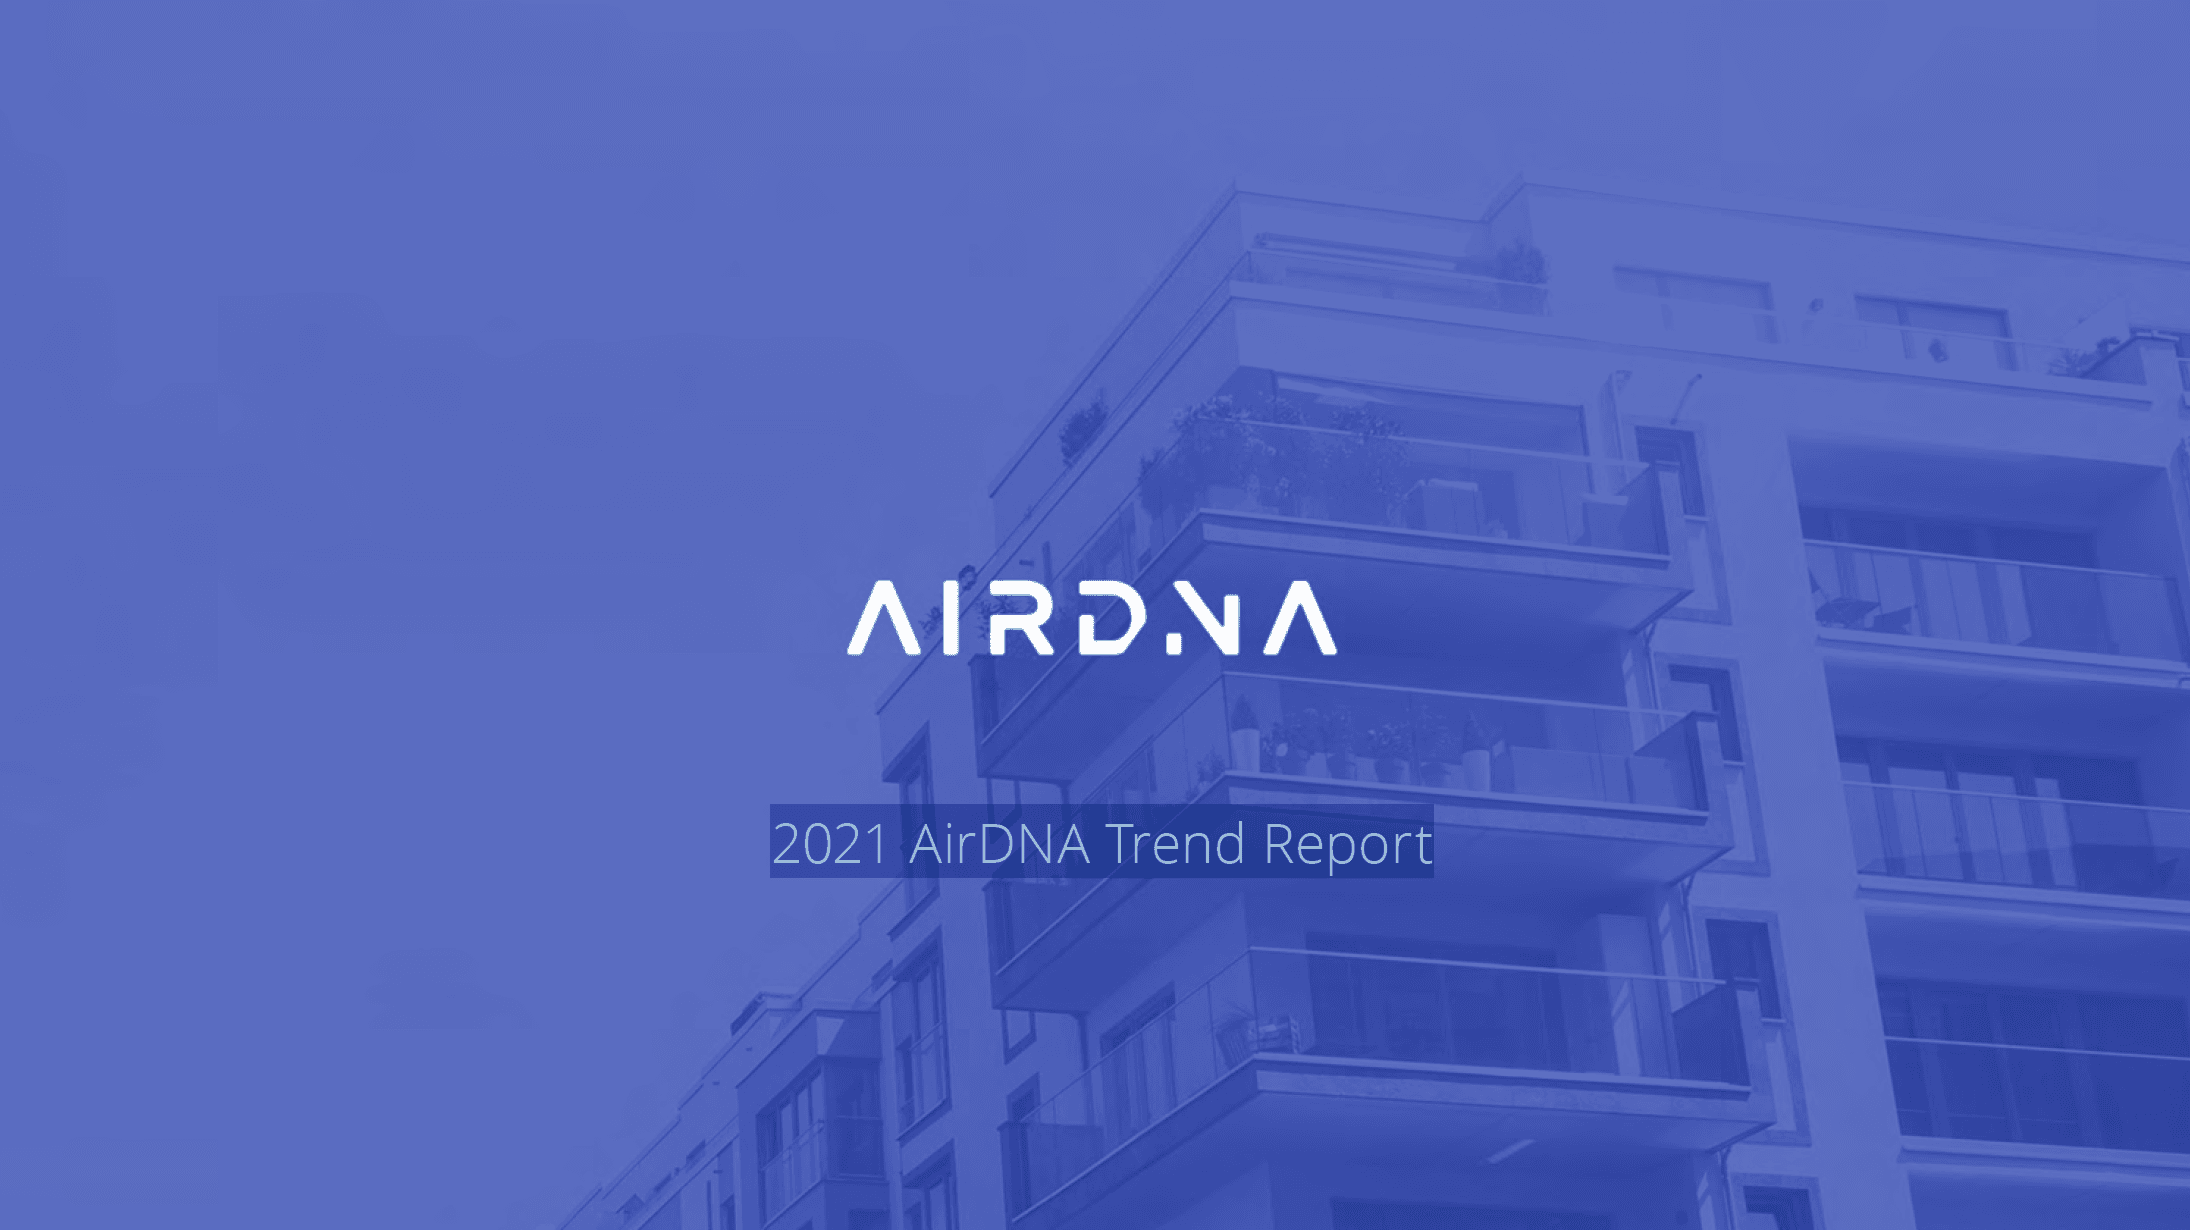 AirDNA Opens in new window